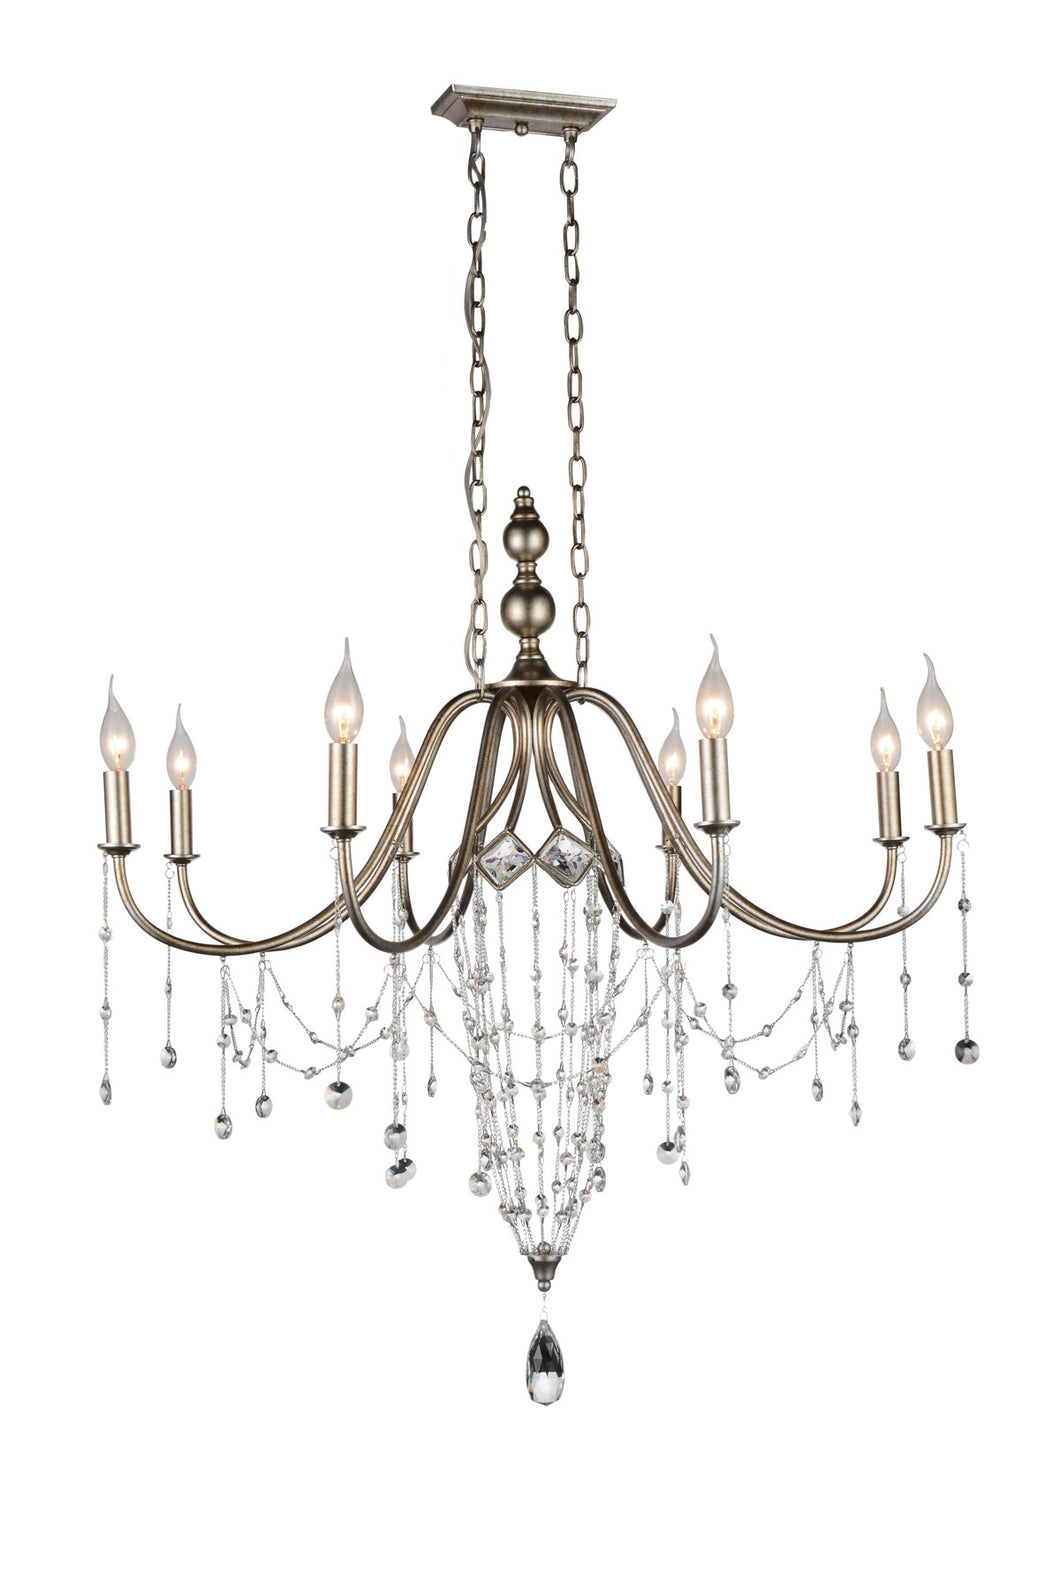 8 Light Up Chandelier with Speckled Nickel finish